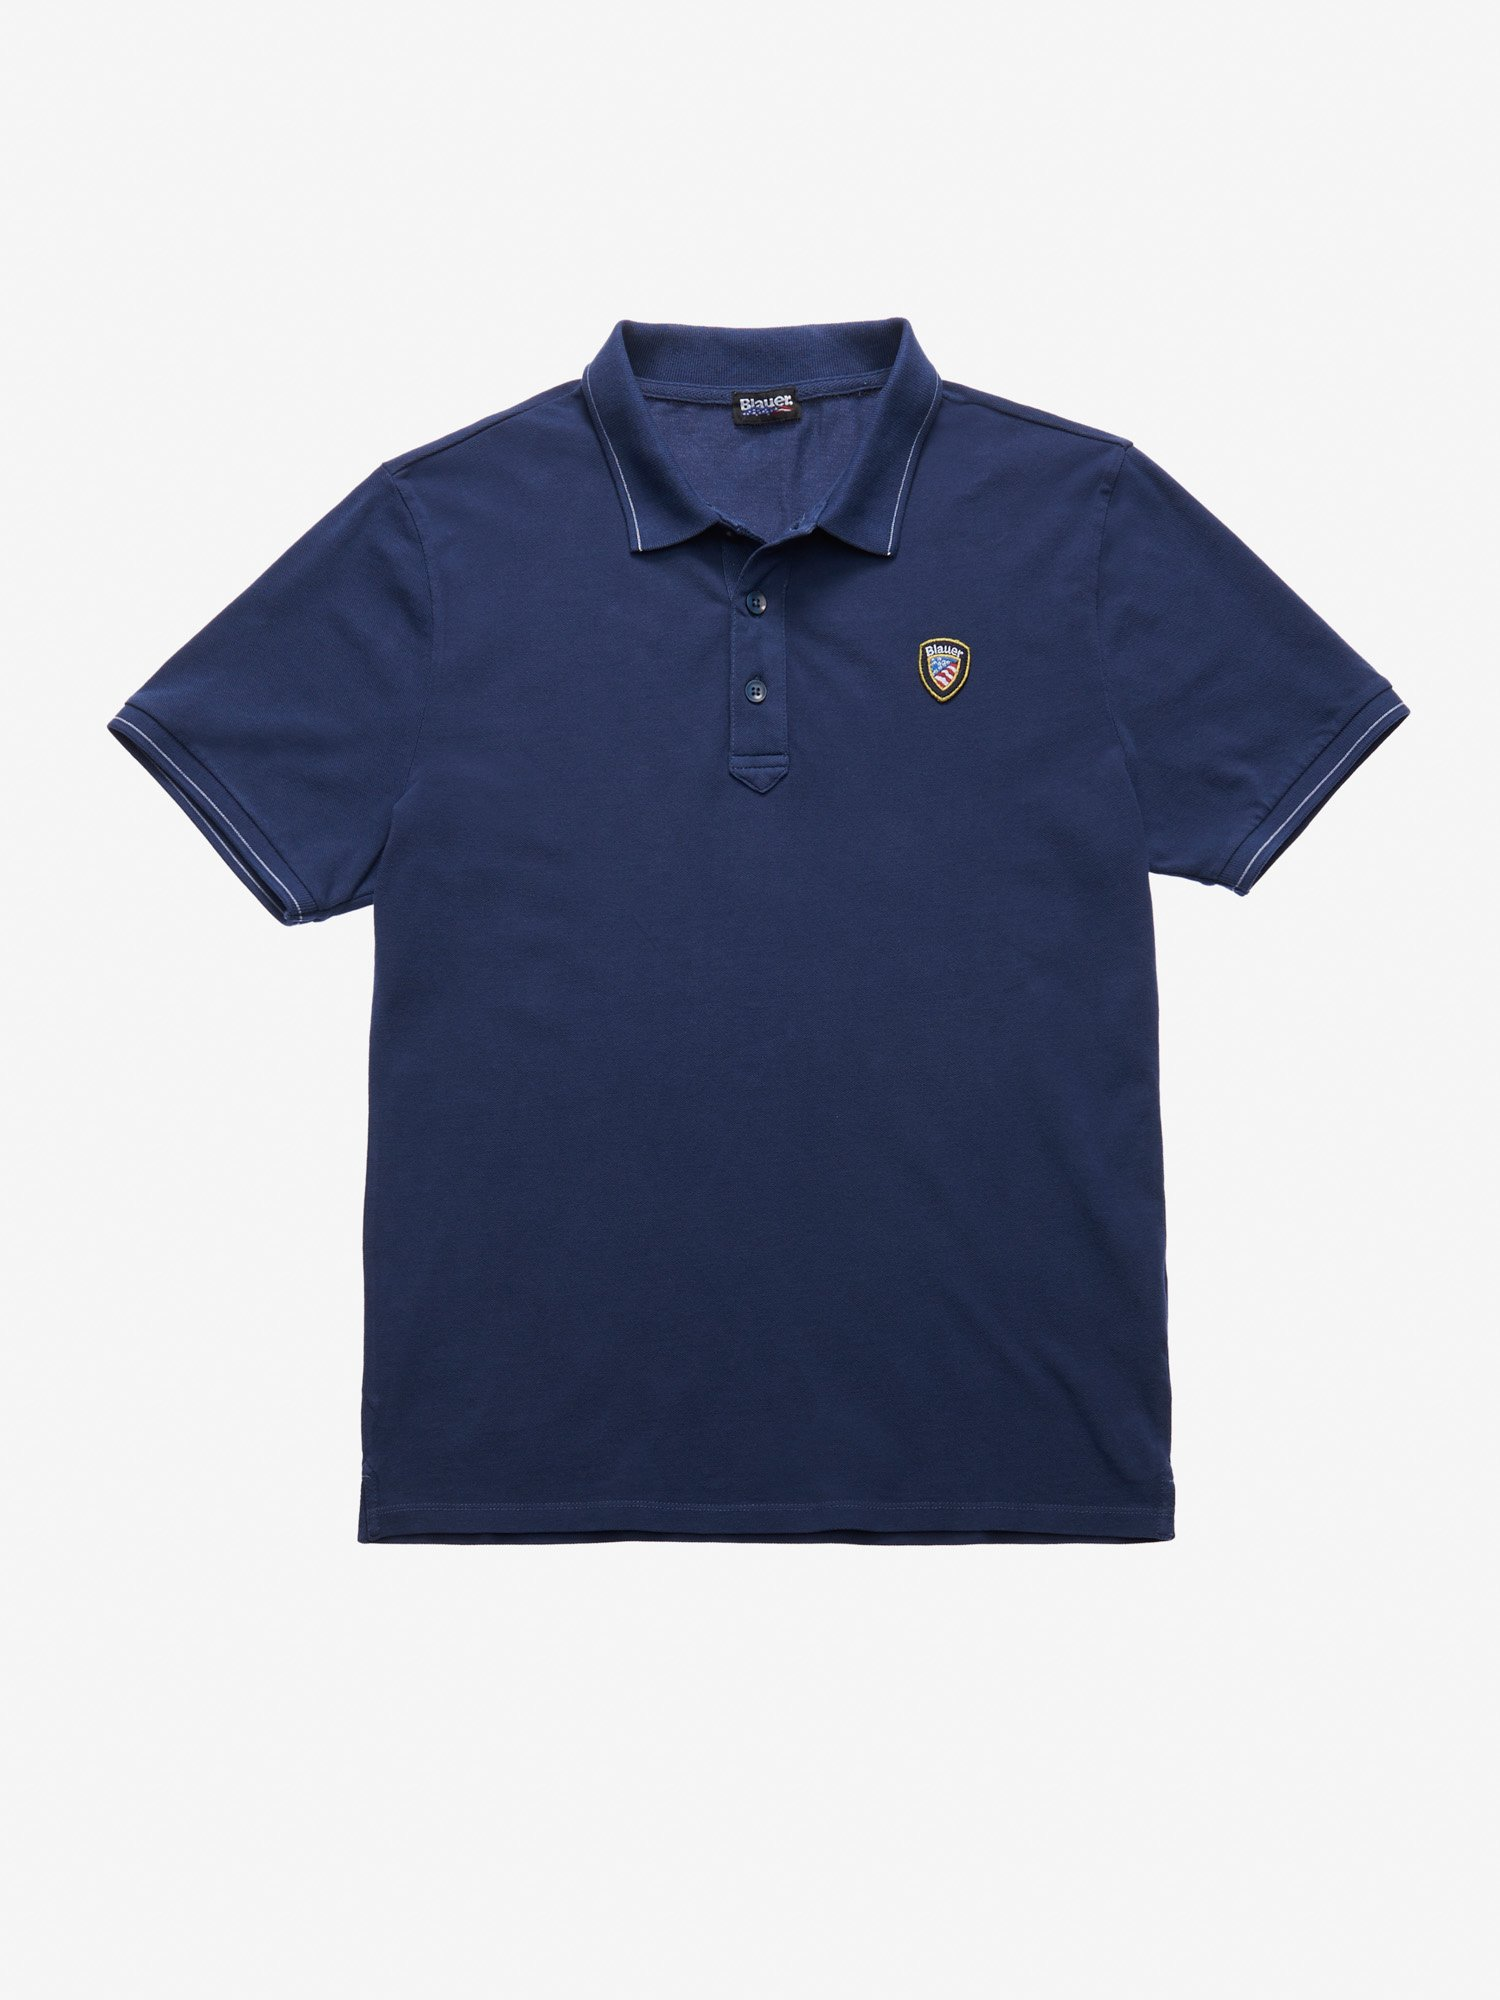 LIGHTWEIGHT PIQUE POLO SHIRT - Blauer